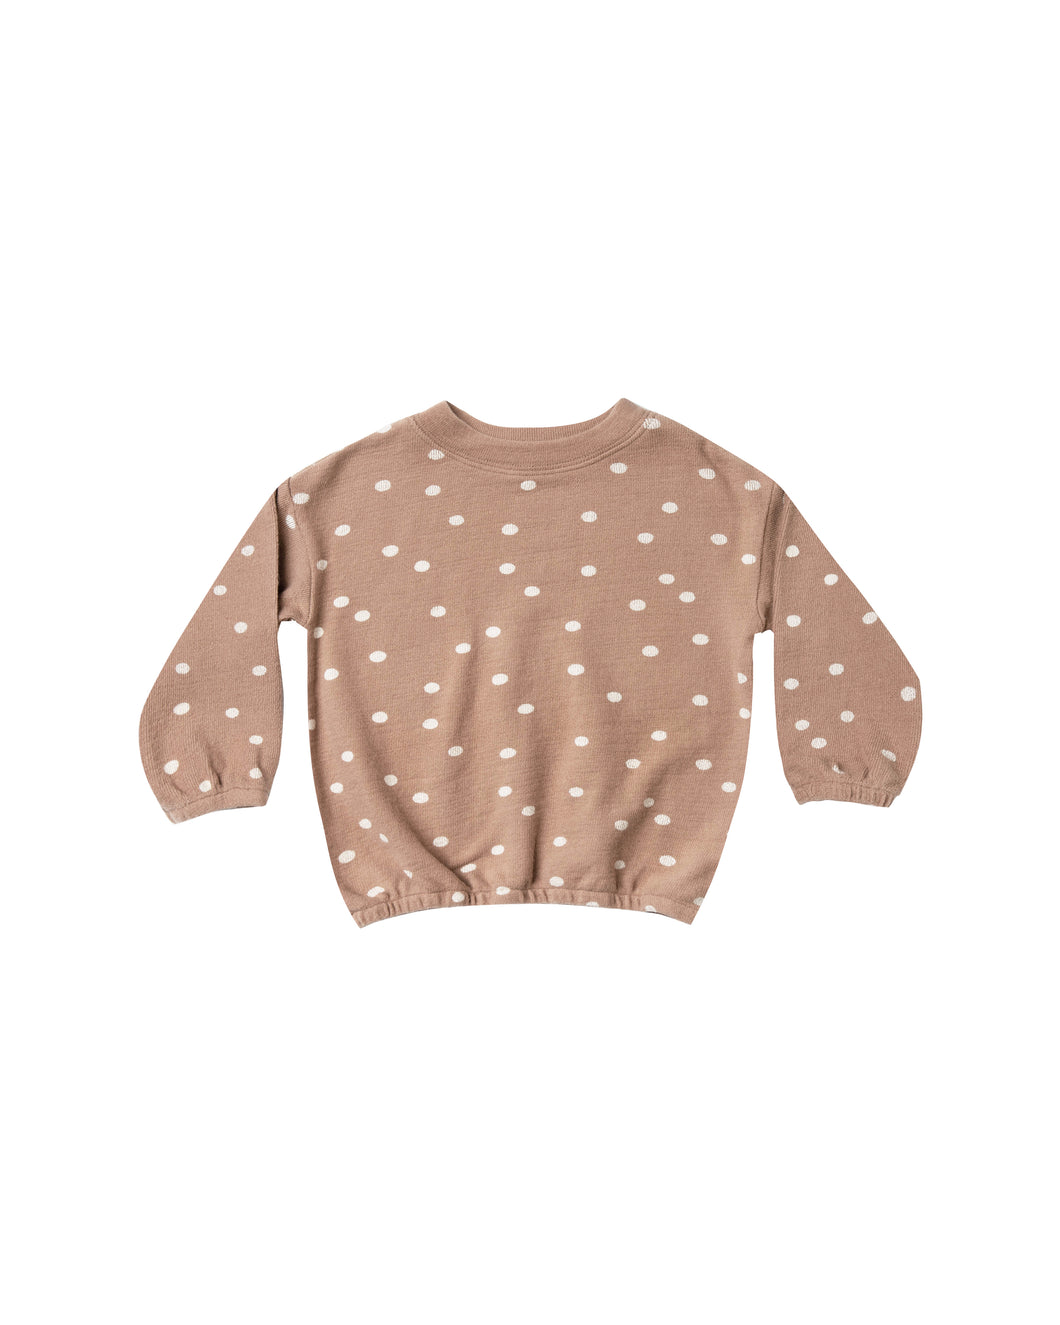 Dot Pullover Sweater - Truffle/Wheat (LAST ONE 8/9)